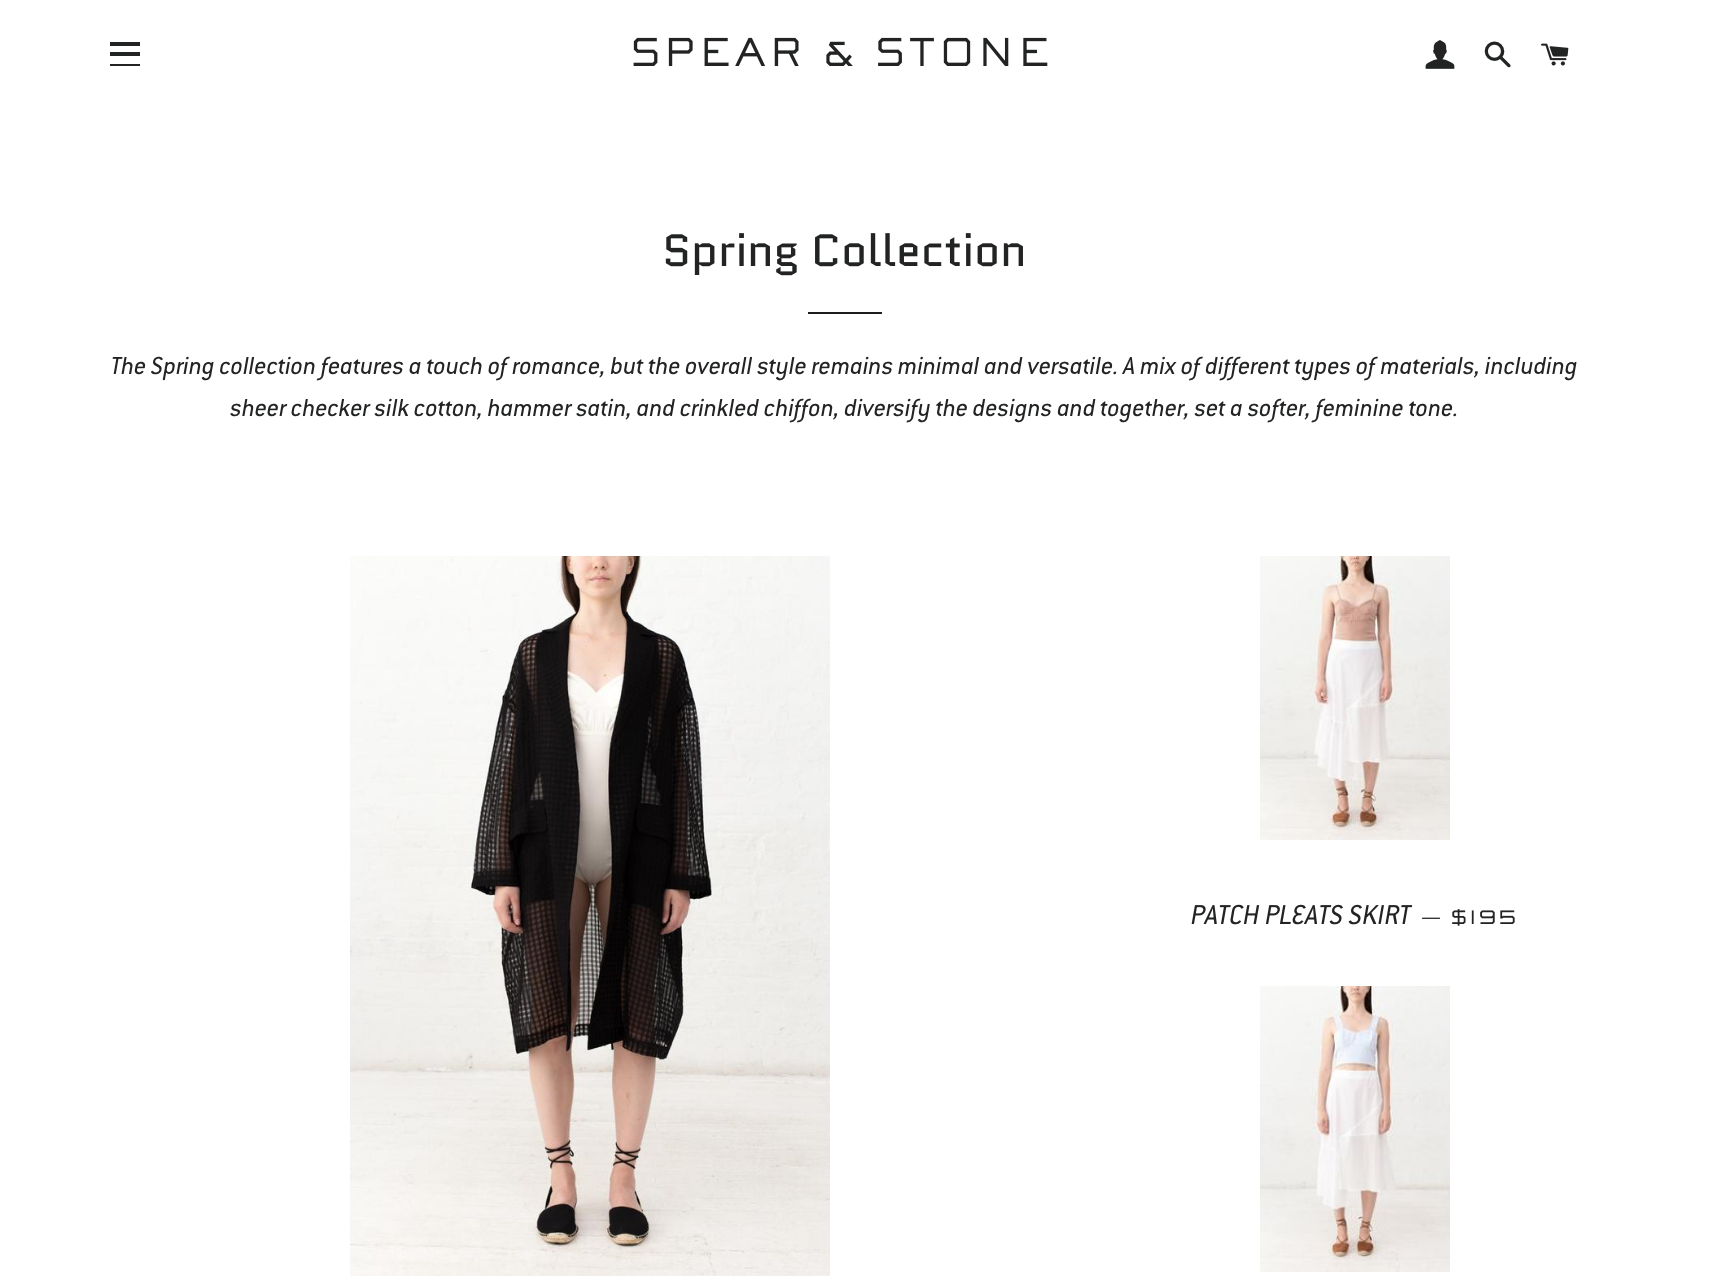 Shoppers can also find Donna Zhong's pieces on Spear and Stone's website.